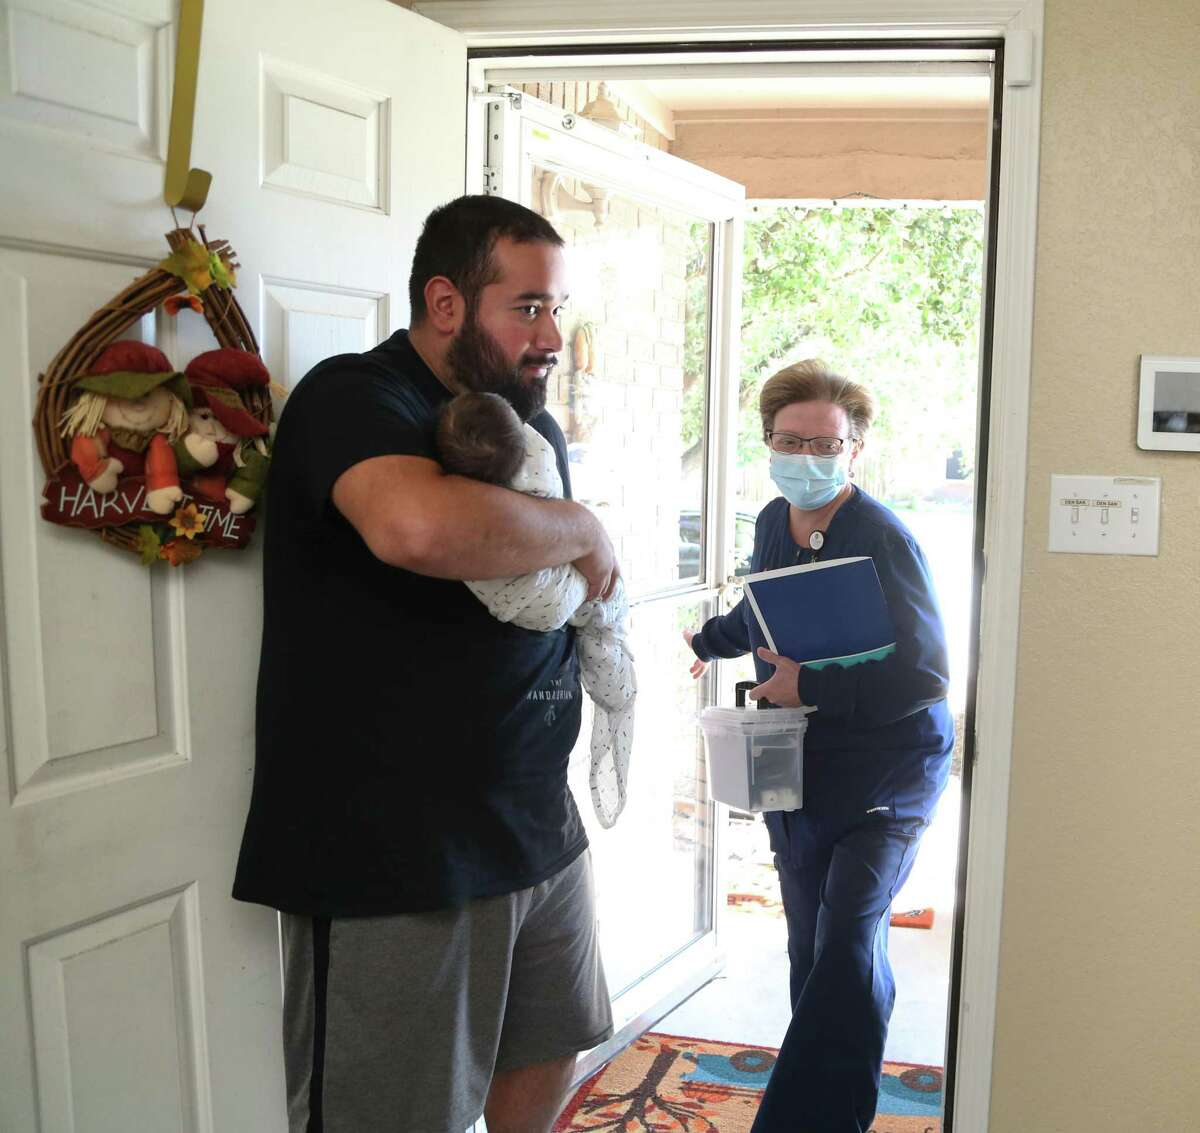 Isaiah Miranda, 28, holds his newborn child, Kaissen Miranda, as nurse Melanie Baker visits to check on the mother, Bridney Hernandez, at their home in San Antonio as part of a new University Health initiative called Hospital at Home.